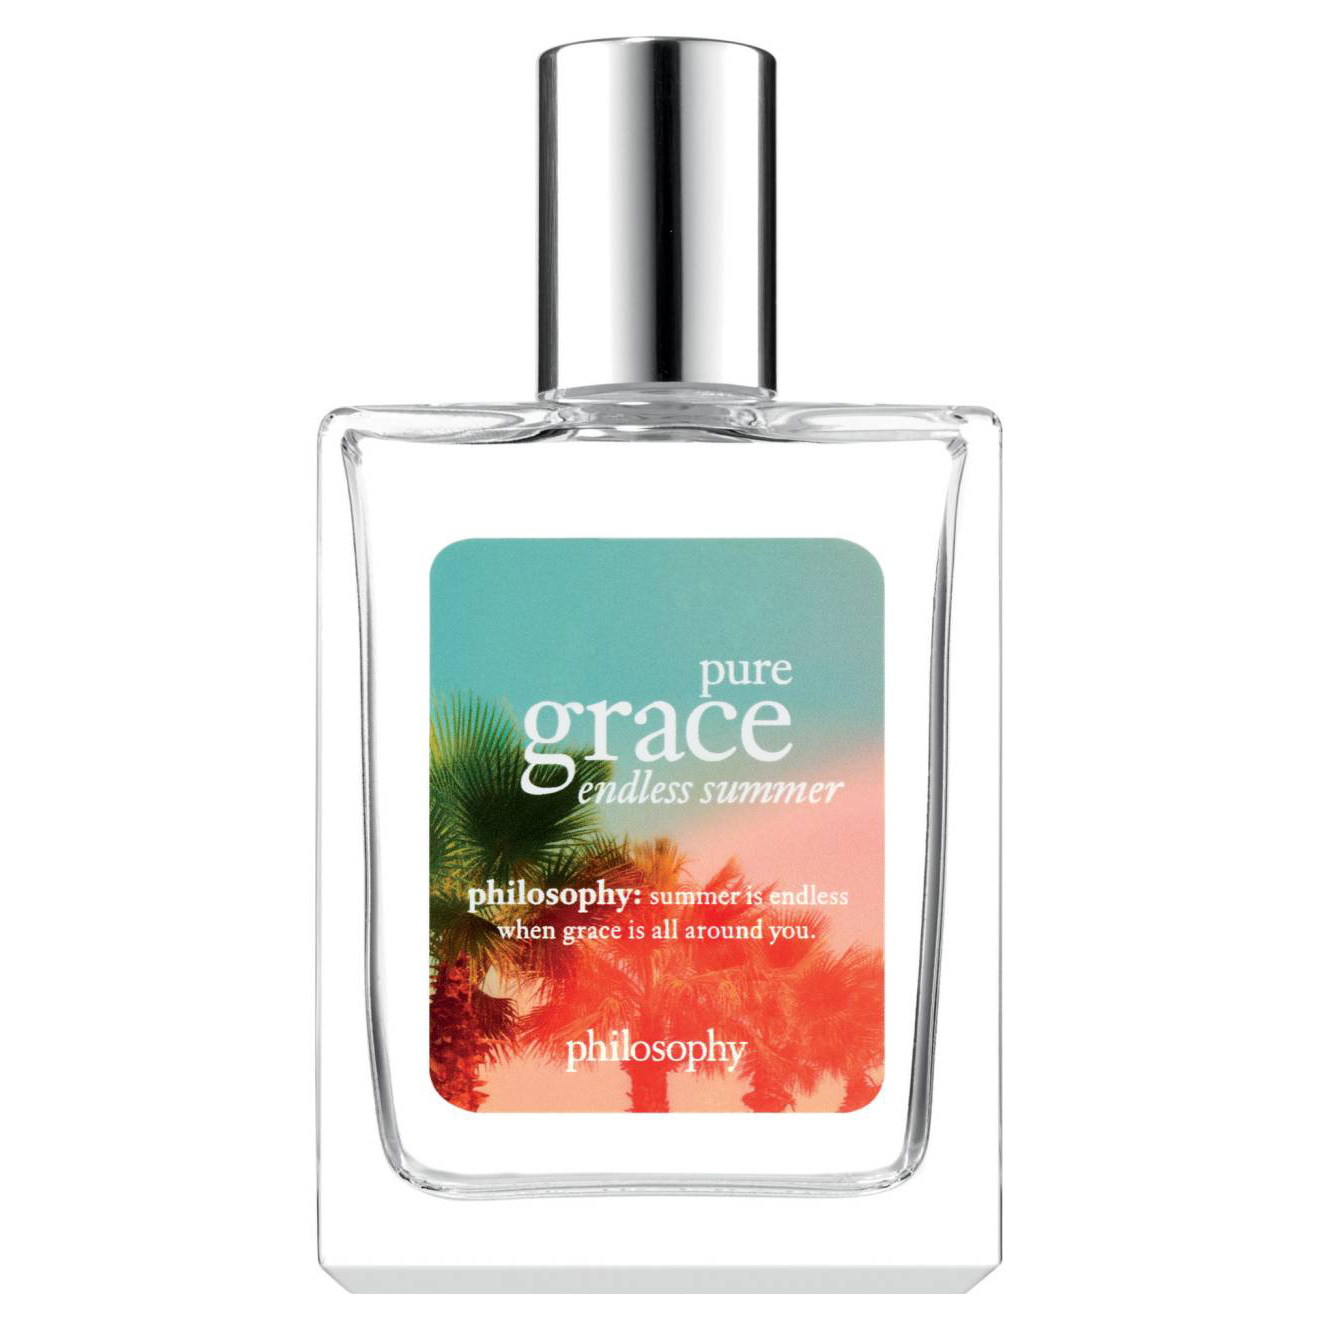 Philosophy pure grace endless summer eau de toilette